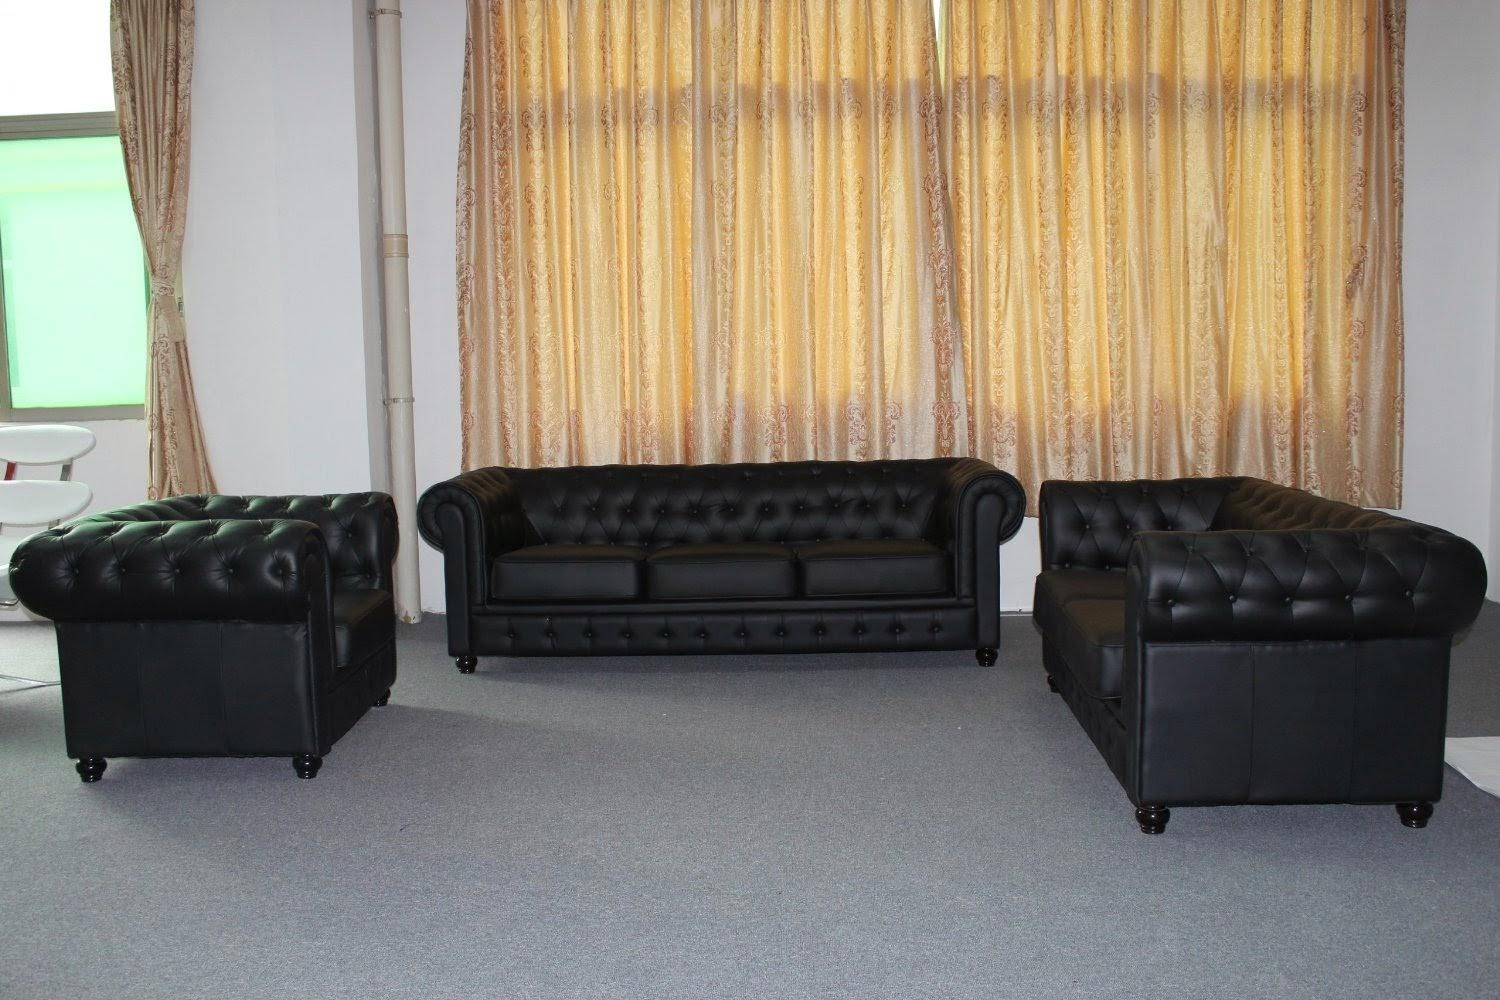 Chesterfield Sofa: Modern Chesterfield Sofa Pertaining To Chesterfield Black Sofas (Image 9 of 20)